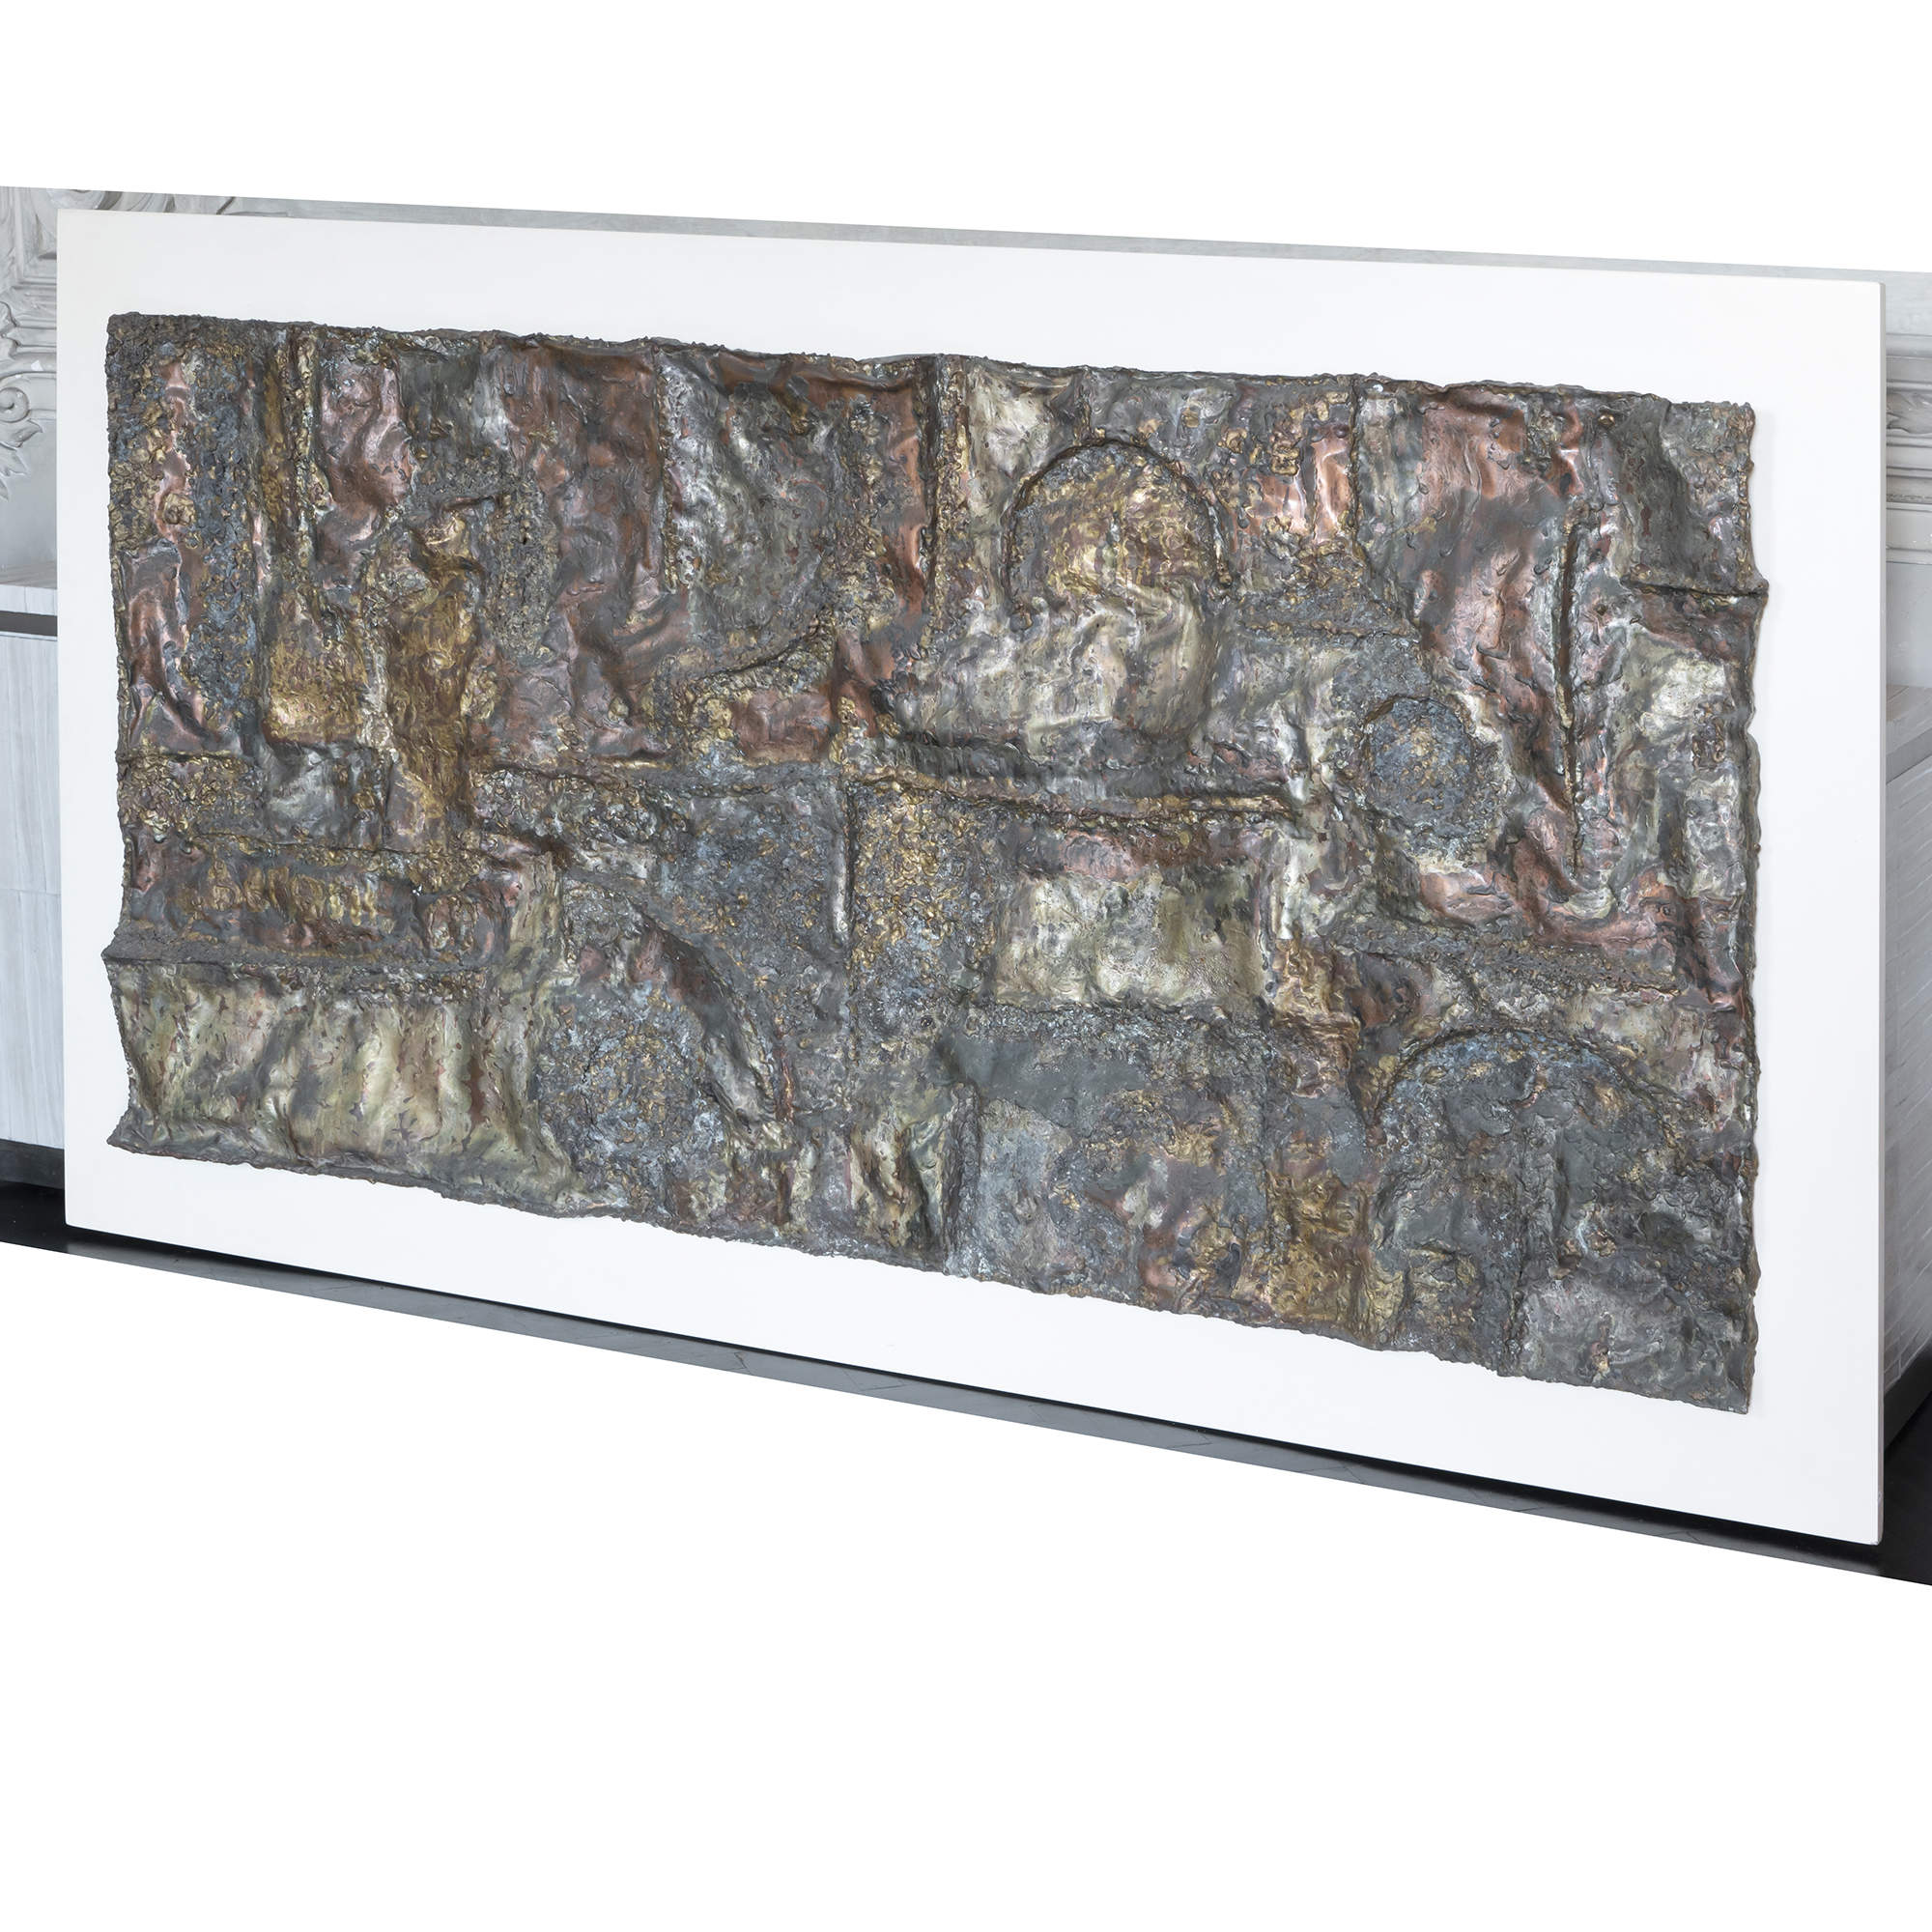 1970s Luigi Bersani Sculptural Wall Panel